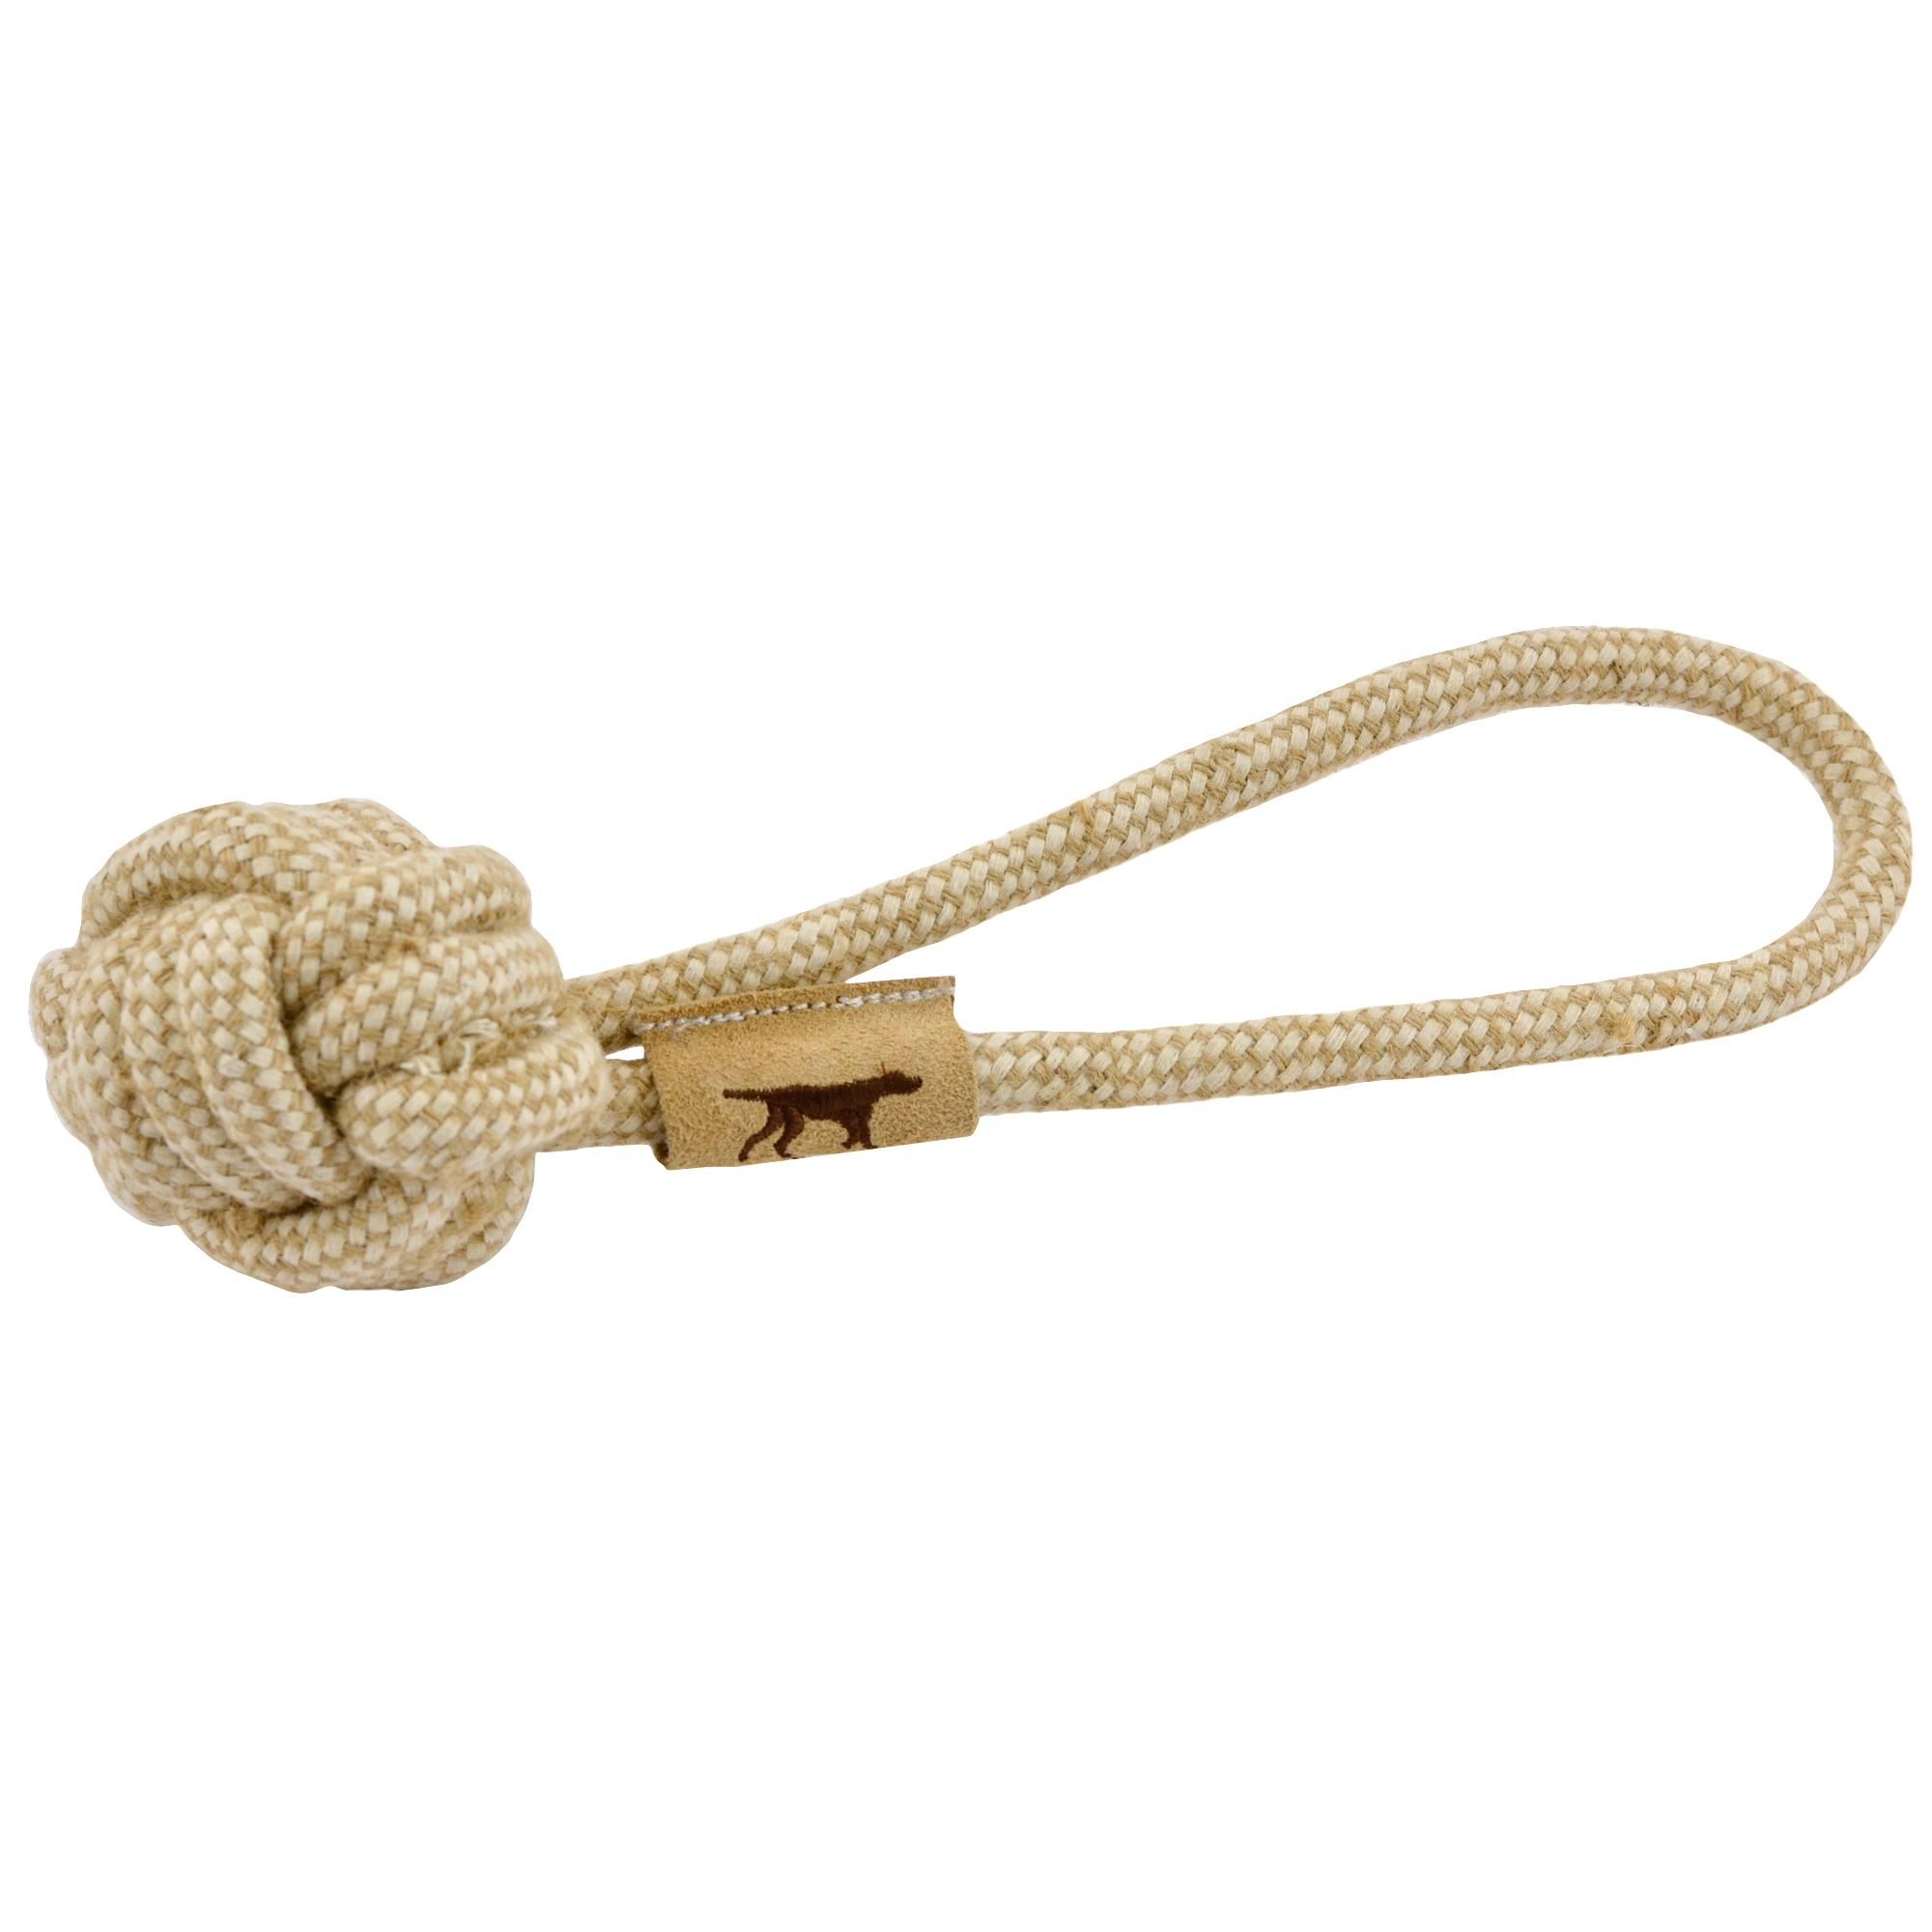 Tall Tails Natural Cotton & Jute Rope Ball Dog Toy, 10-in